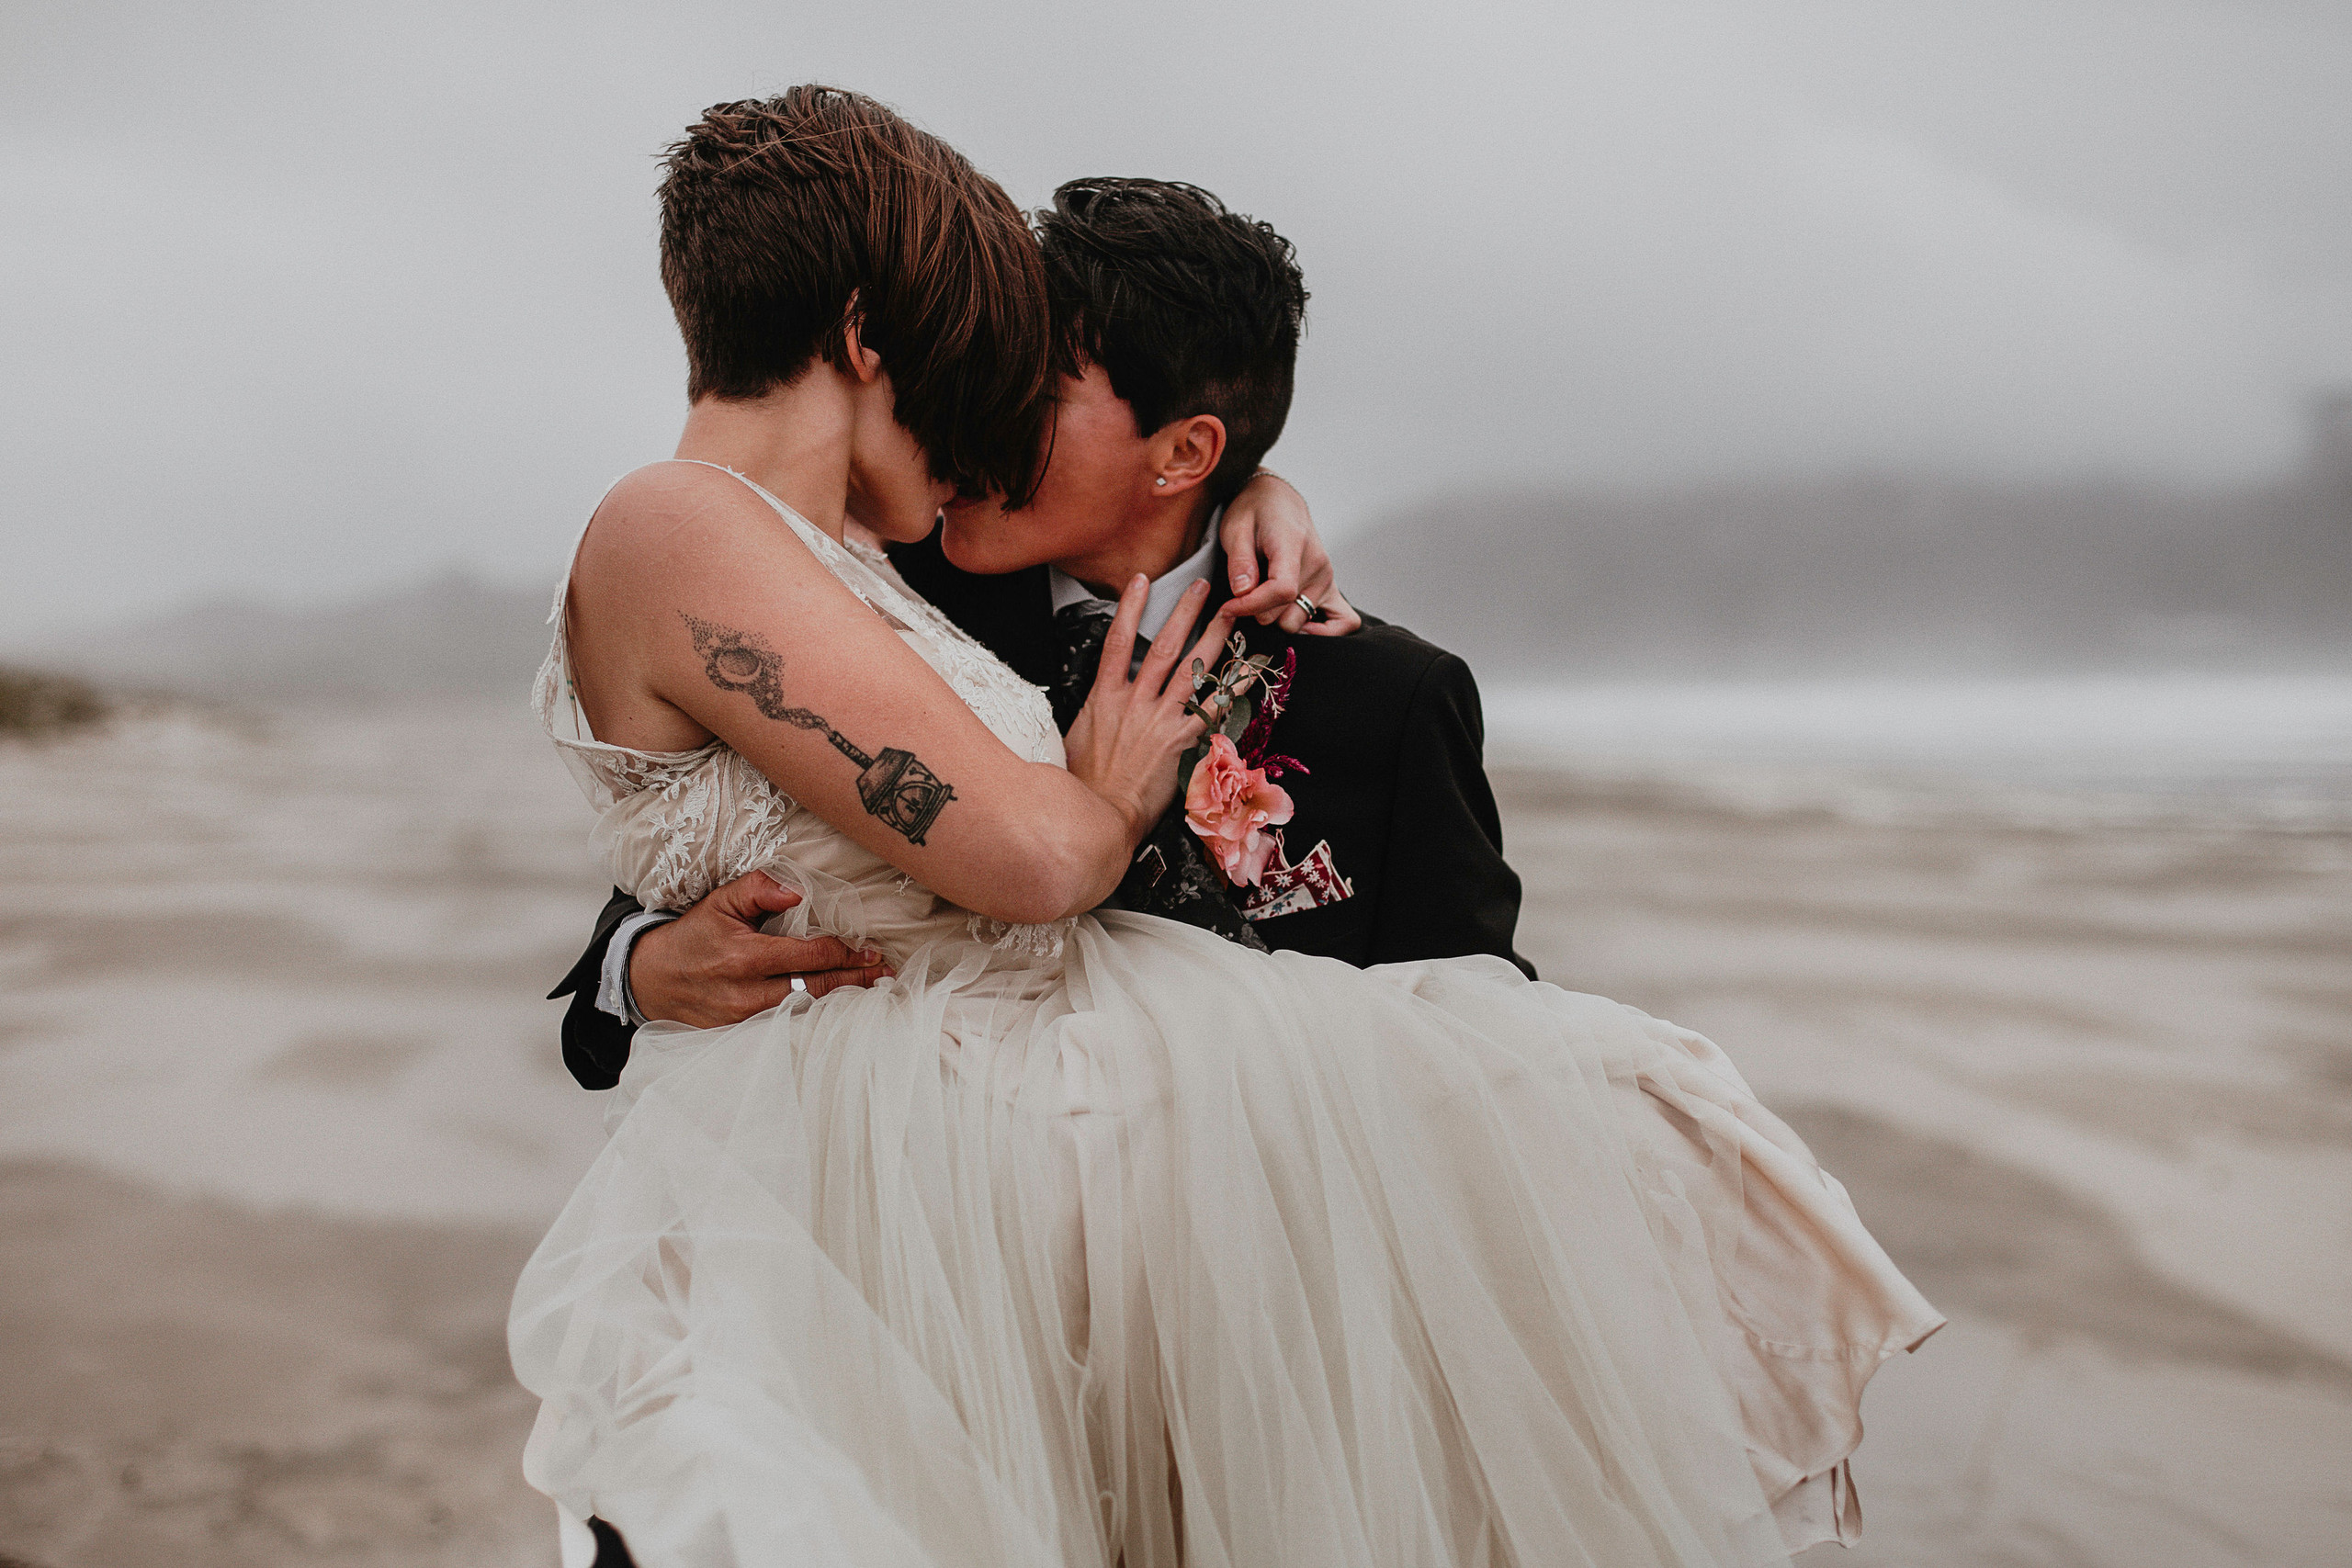 A LGBTQ couple on the beach kissing passionately; the bride in a white vintage dress is being carried by their partner in a black suit, who is known as the queer officiant of Once Upon A Vow